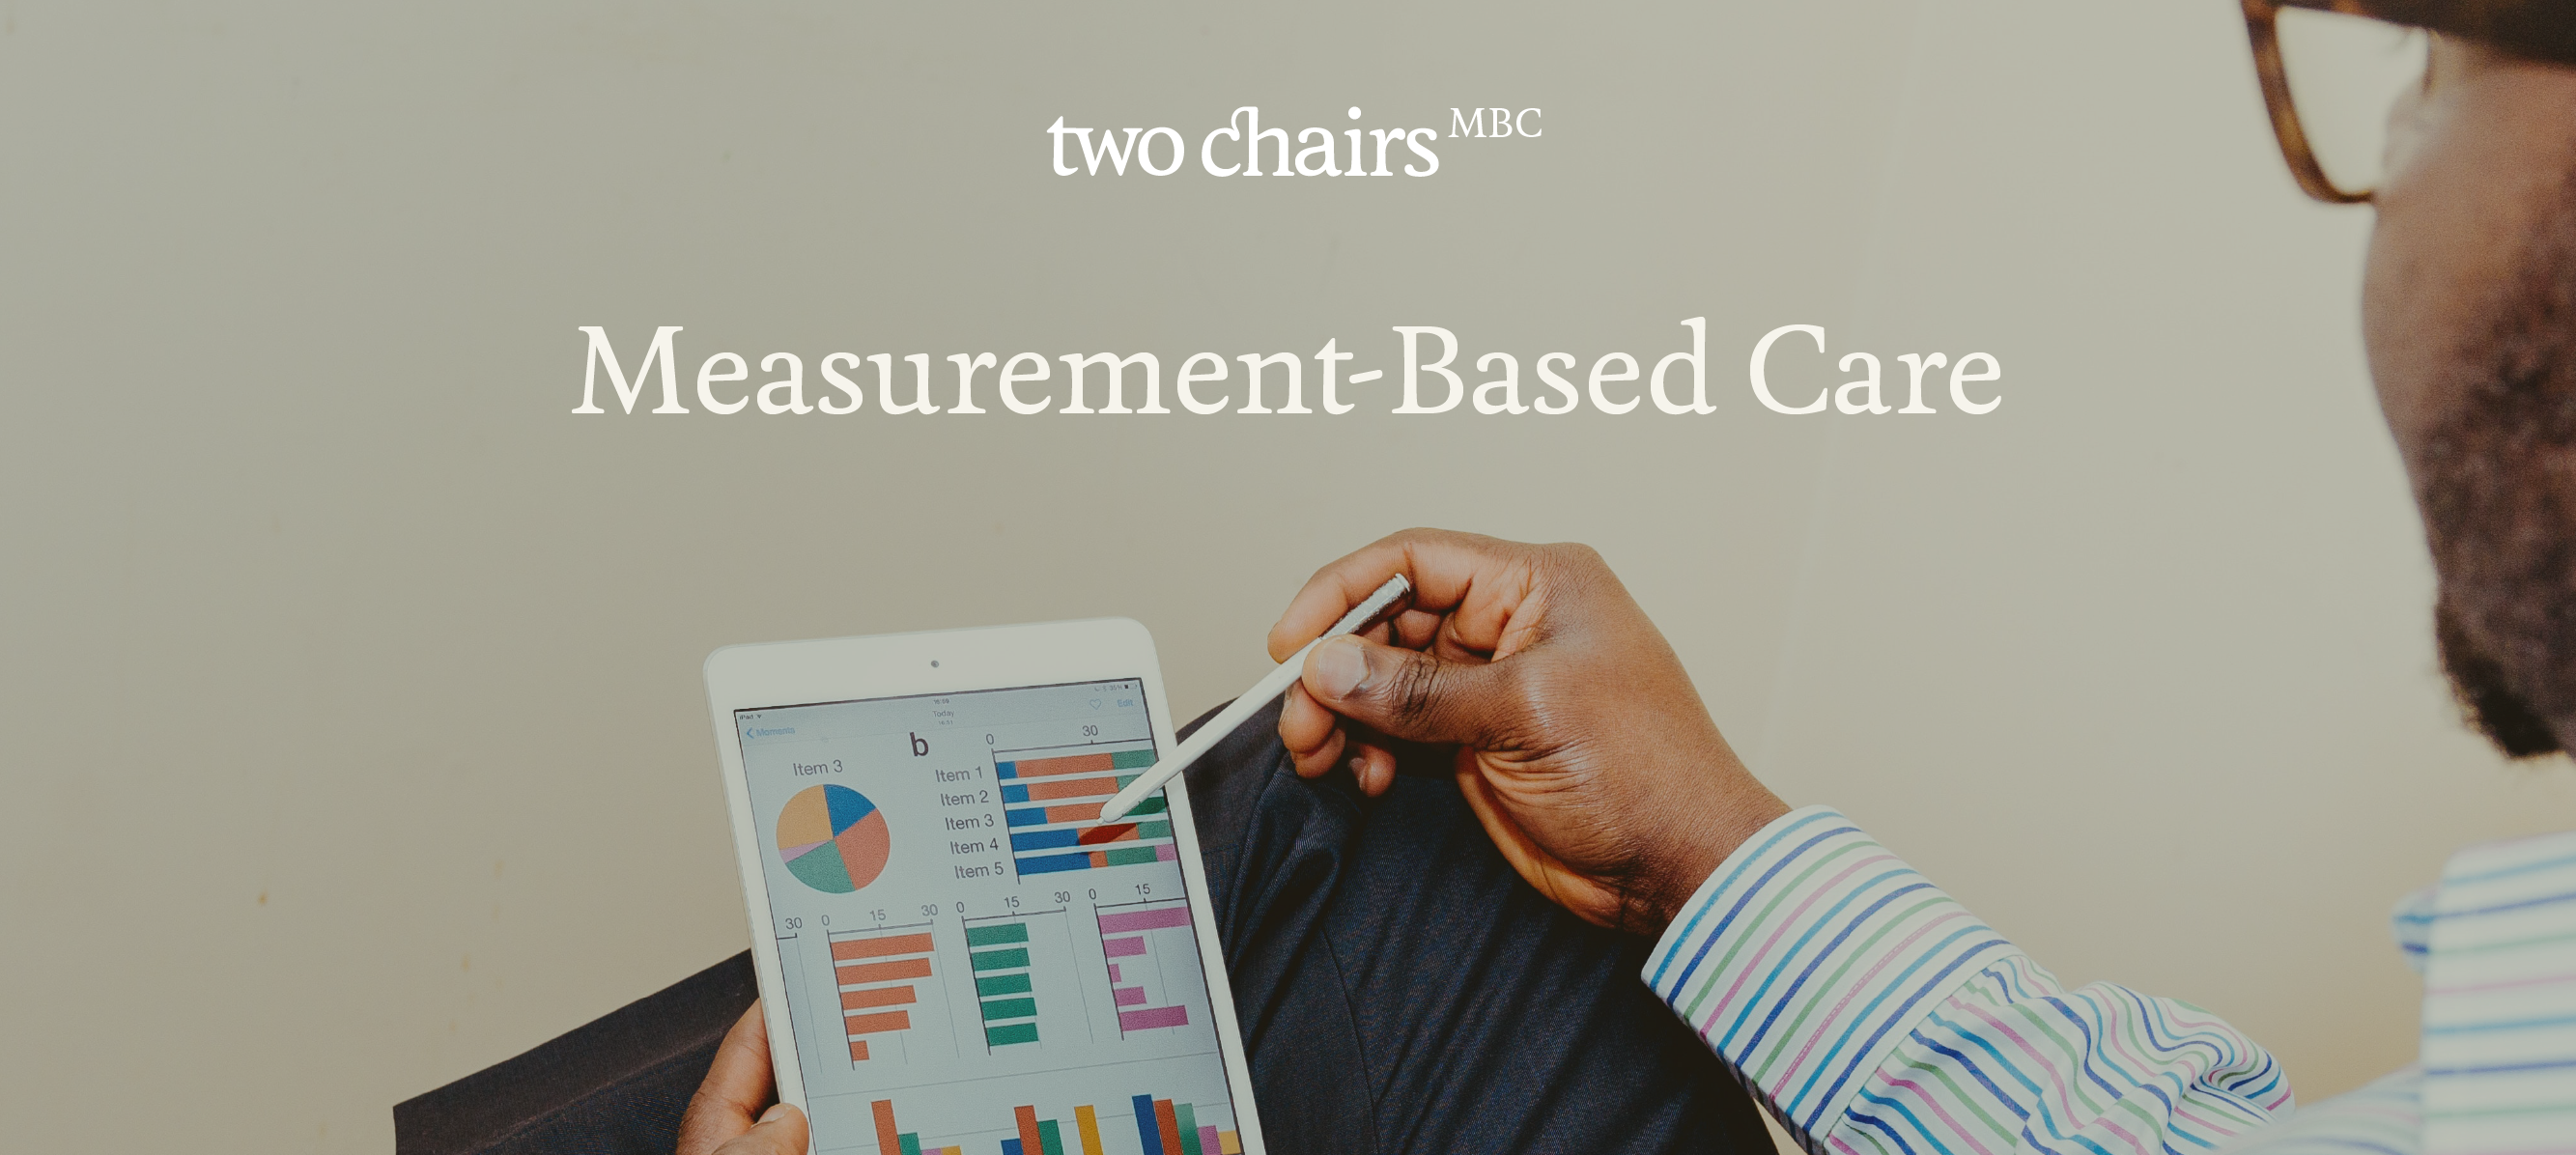 Measurement-Based Care at Two Chairs: Leveraging Client-Reported Data to Provide Exceptional Care